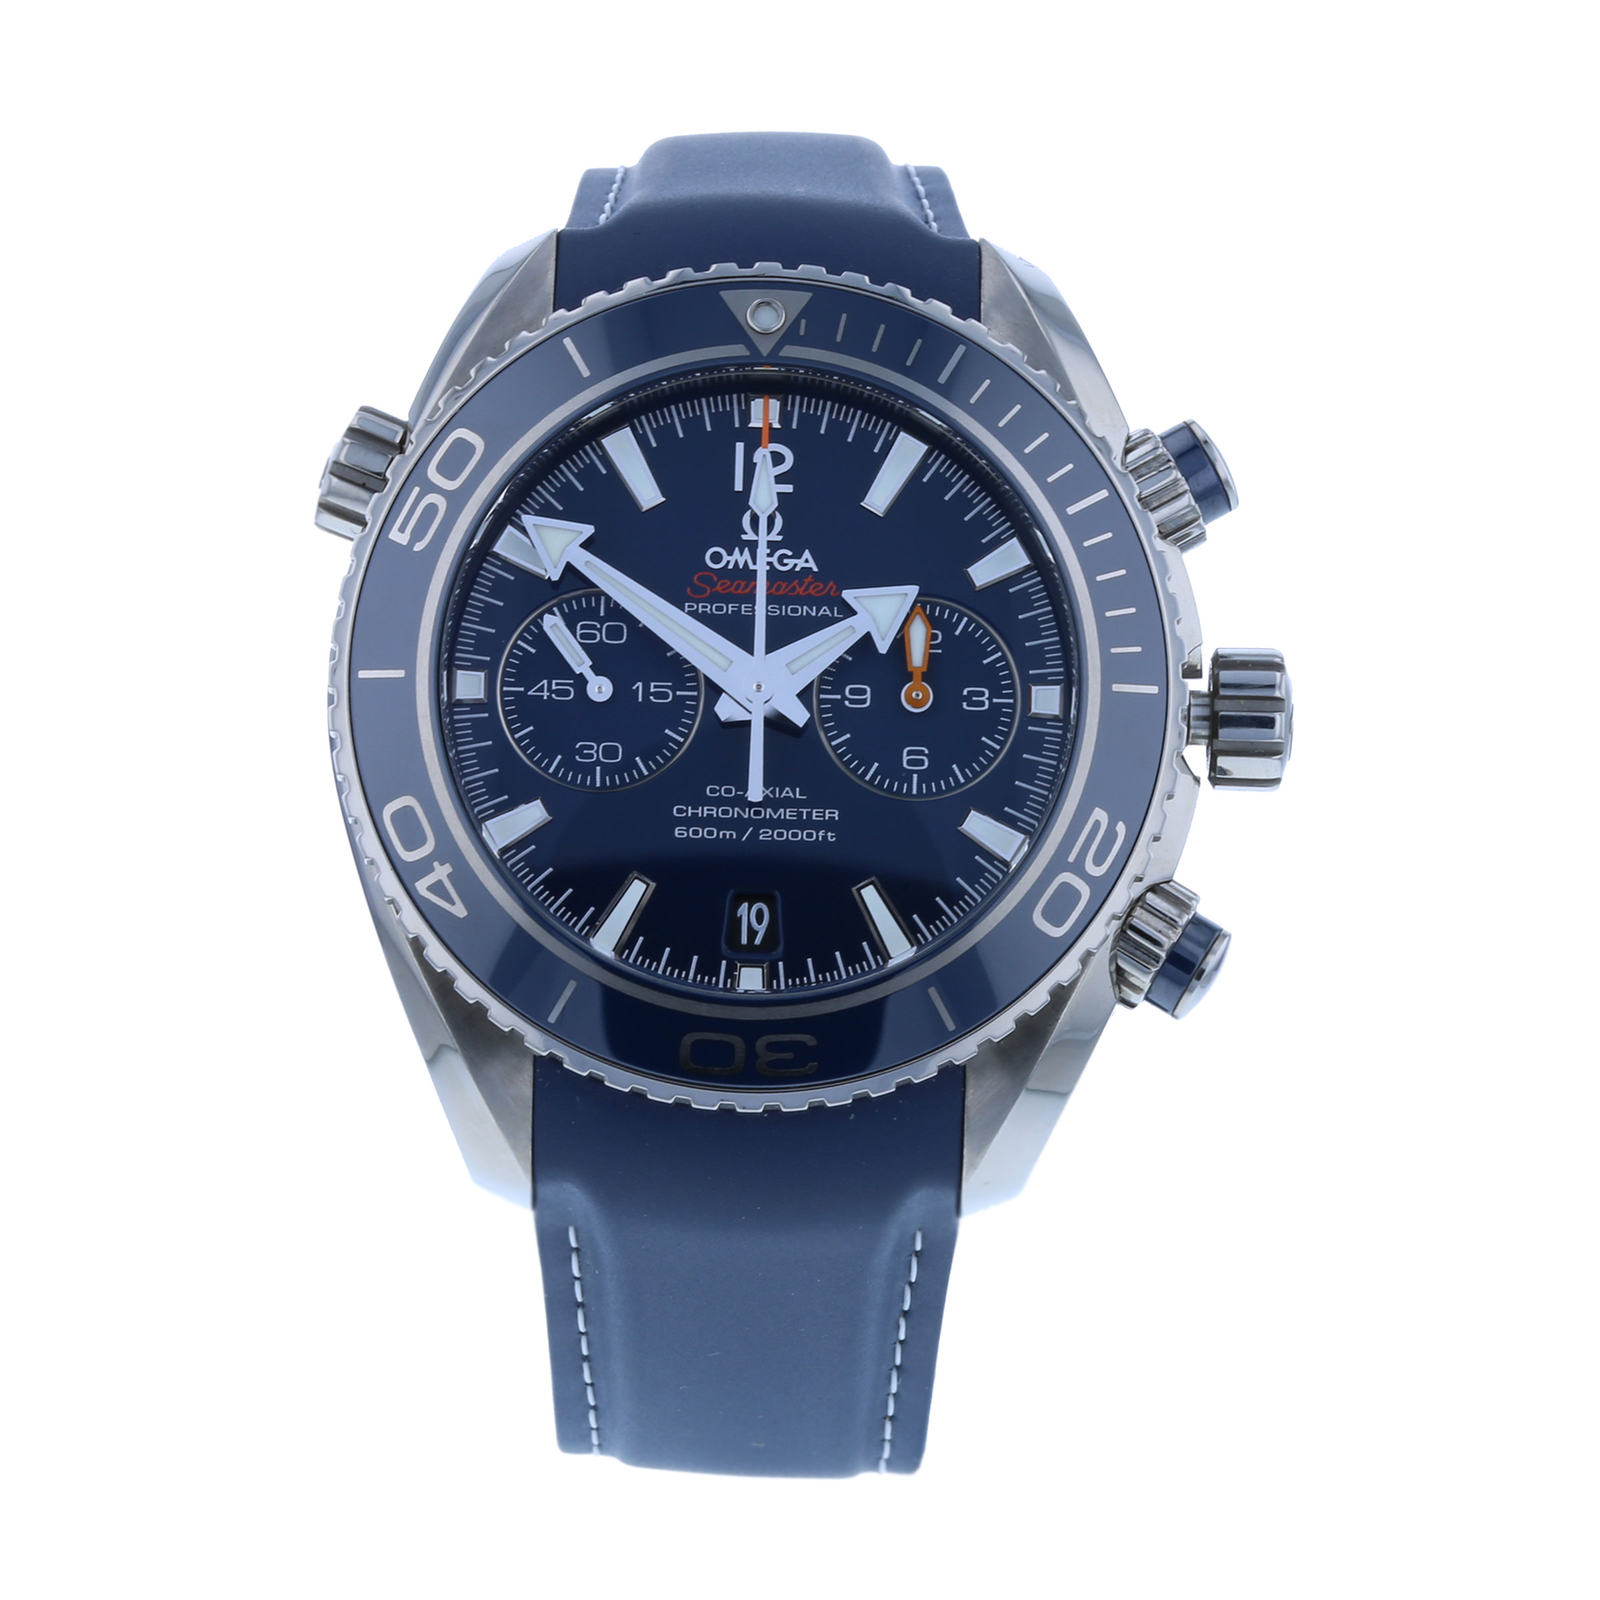 Pre-Owned Omega Planet Ocean, Circa 2013